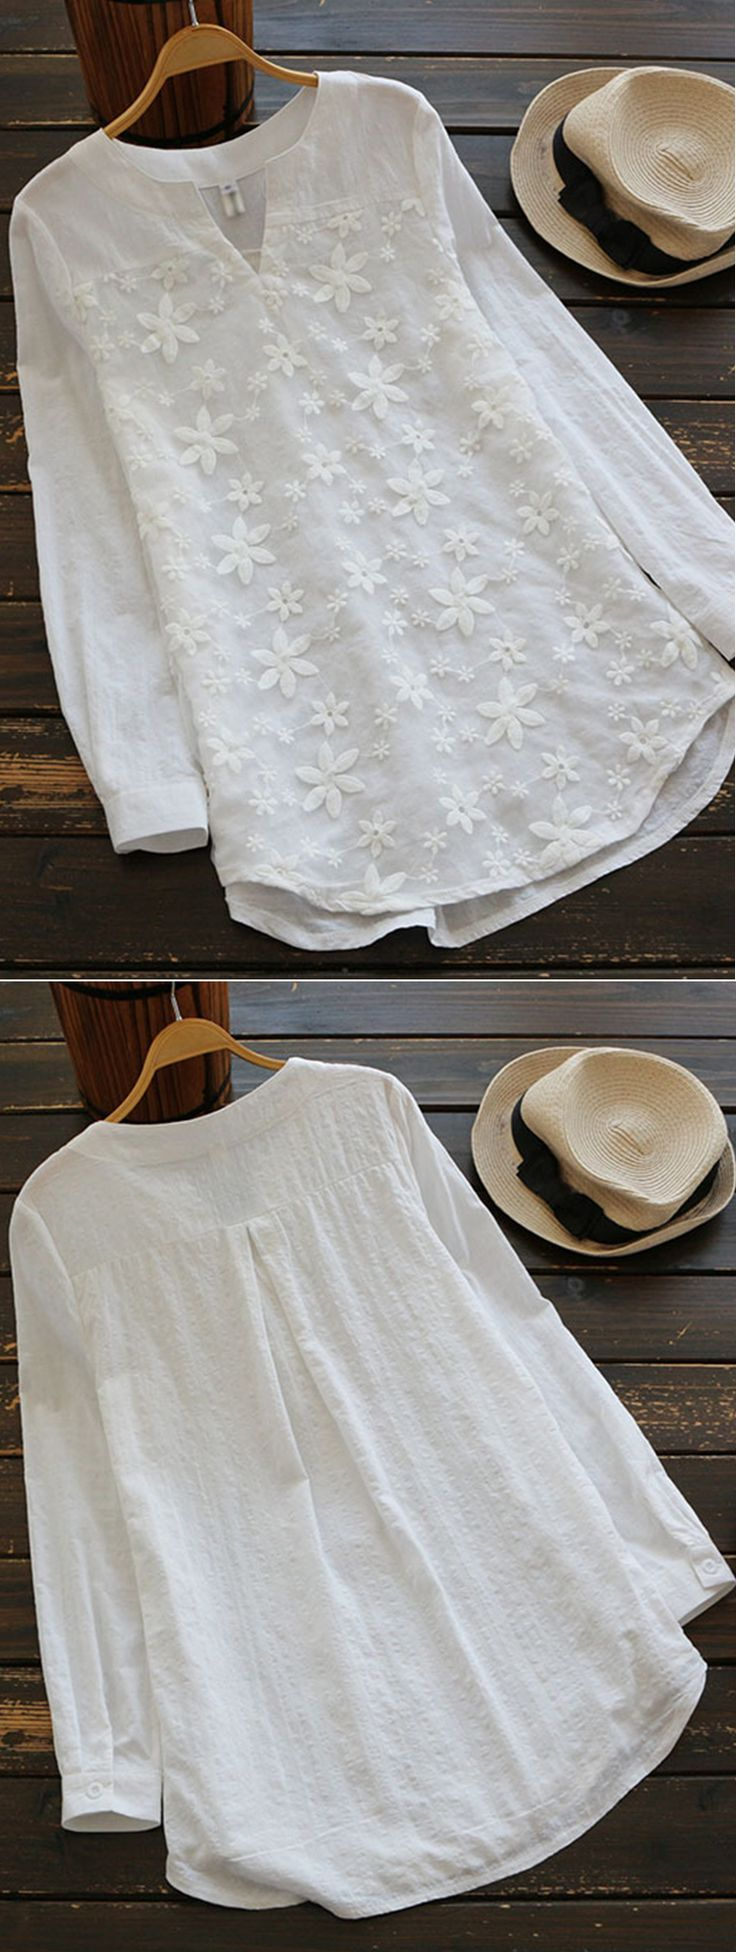 UP TO 49% OFF! Women Embroidered V-neck Long Sleeve Shirts. SHOP NOW!